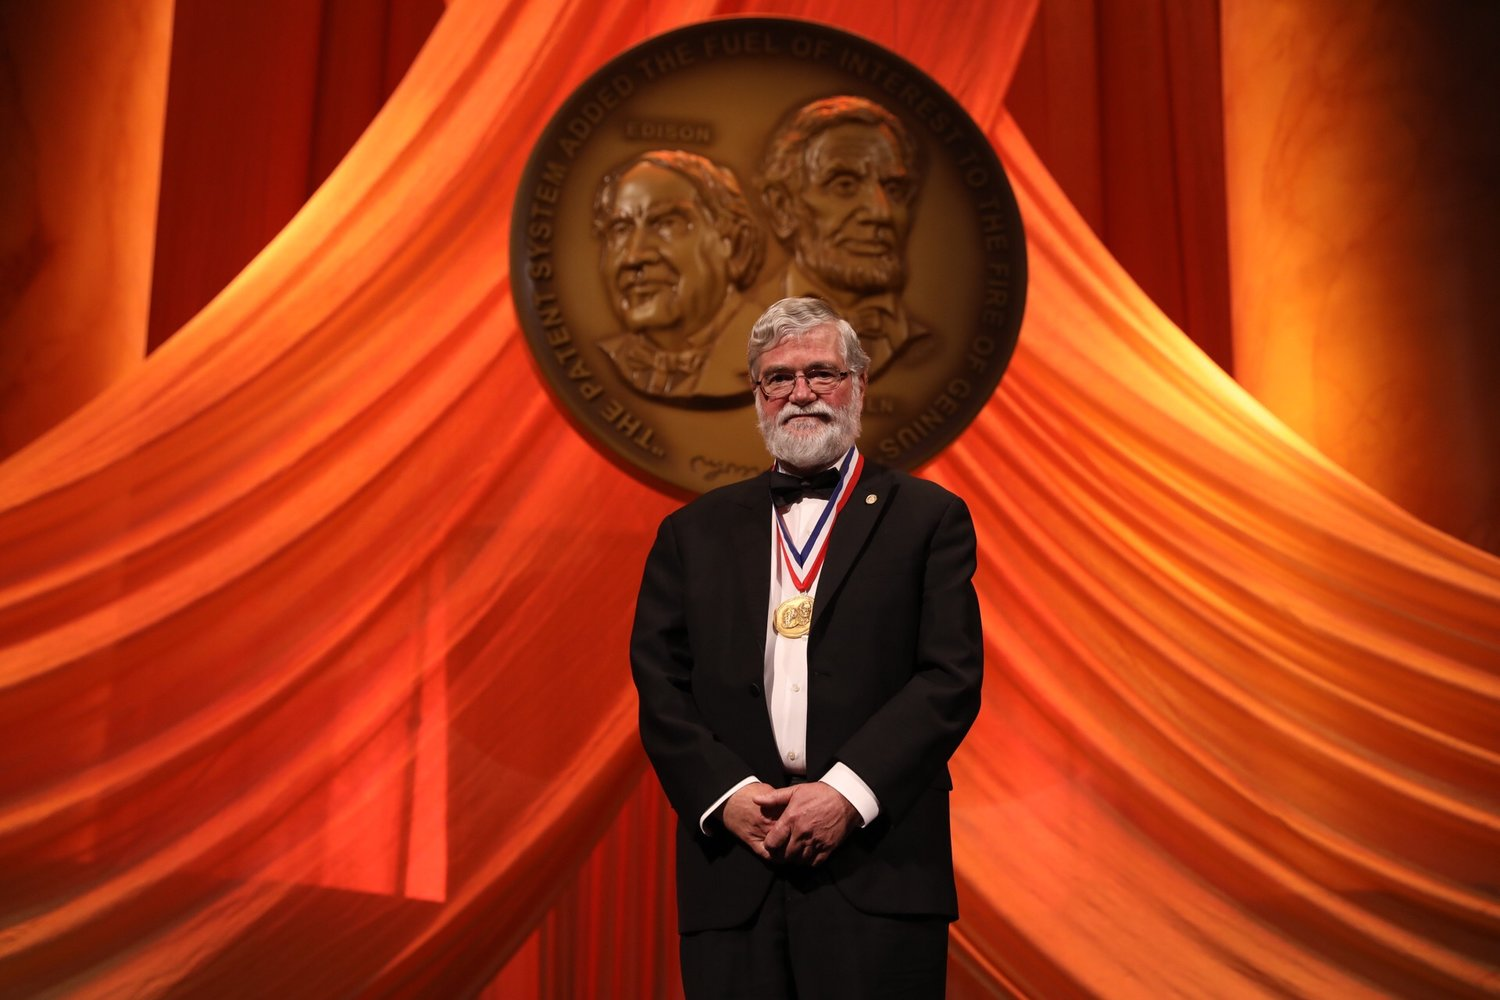 """Don Arney, newly inducted into the 2017 National Inventors Hall of Fame, stands under the medal, with Edison and Lincoln looking on. The inscription reads: """" The Patent System Added The Fuel Of Interest To The Fire Of Genius. """""""